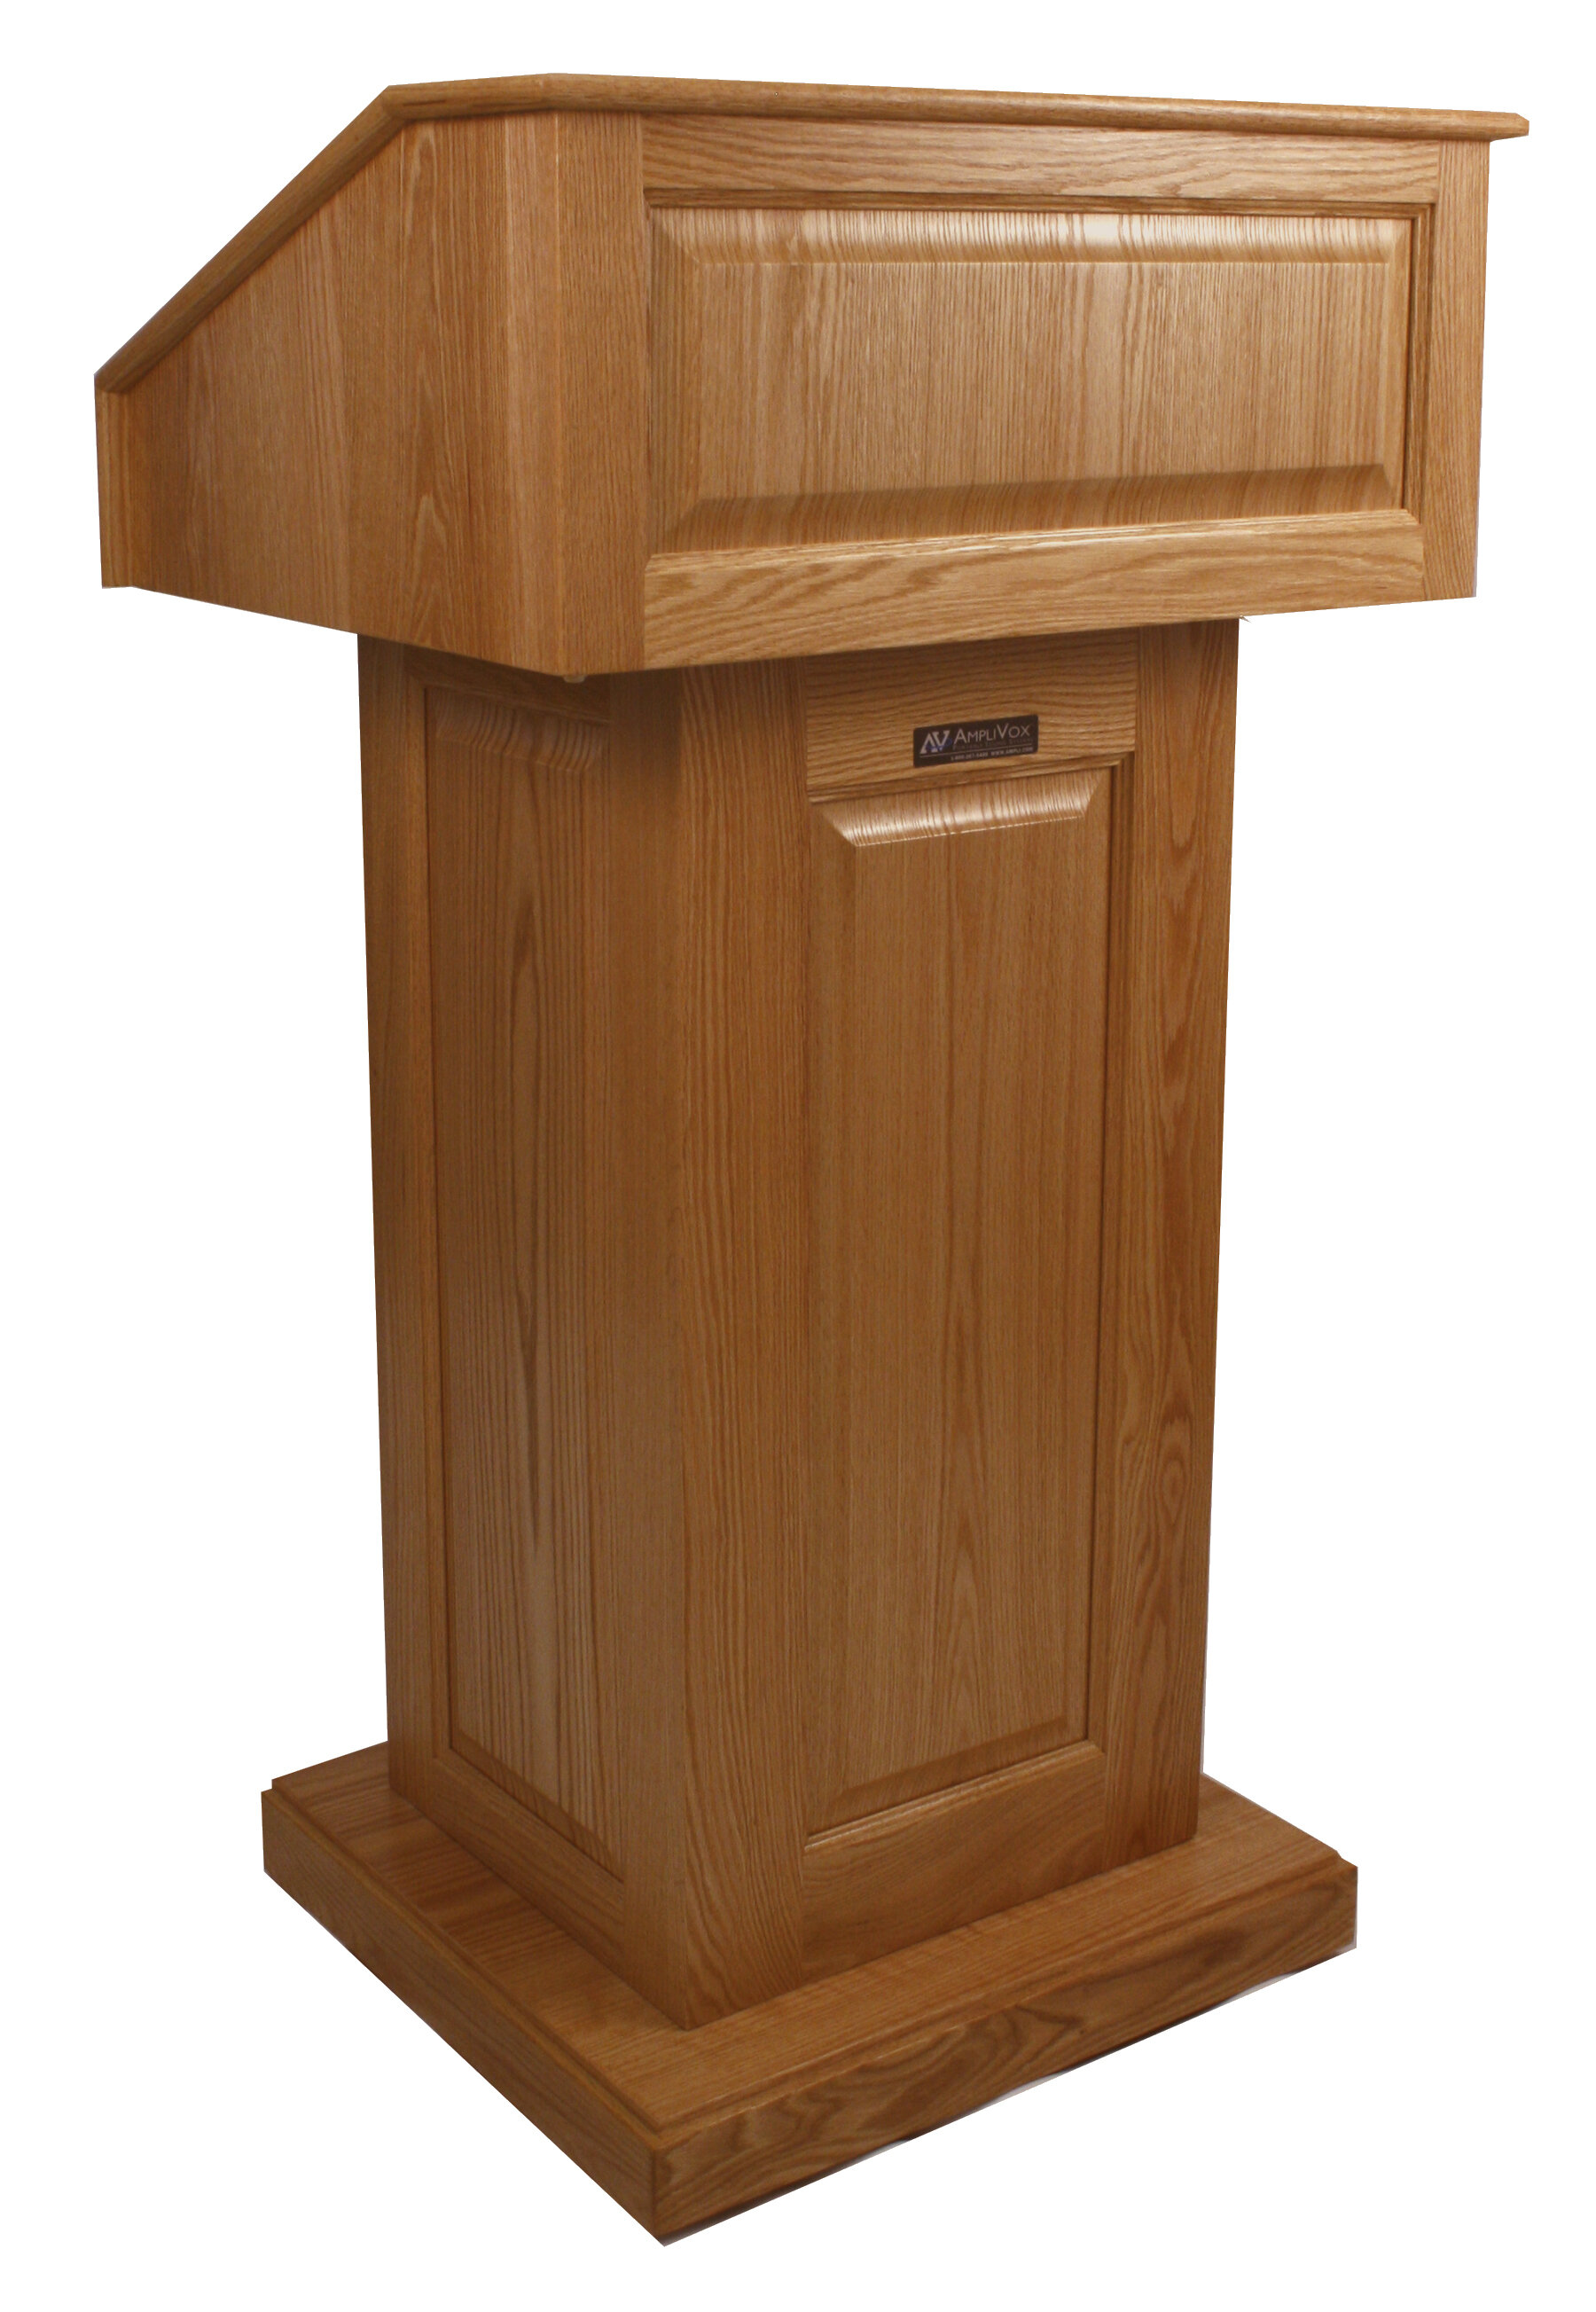 Amplivox Sound Systems Victoria Solid Wood Lectern Wayfair